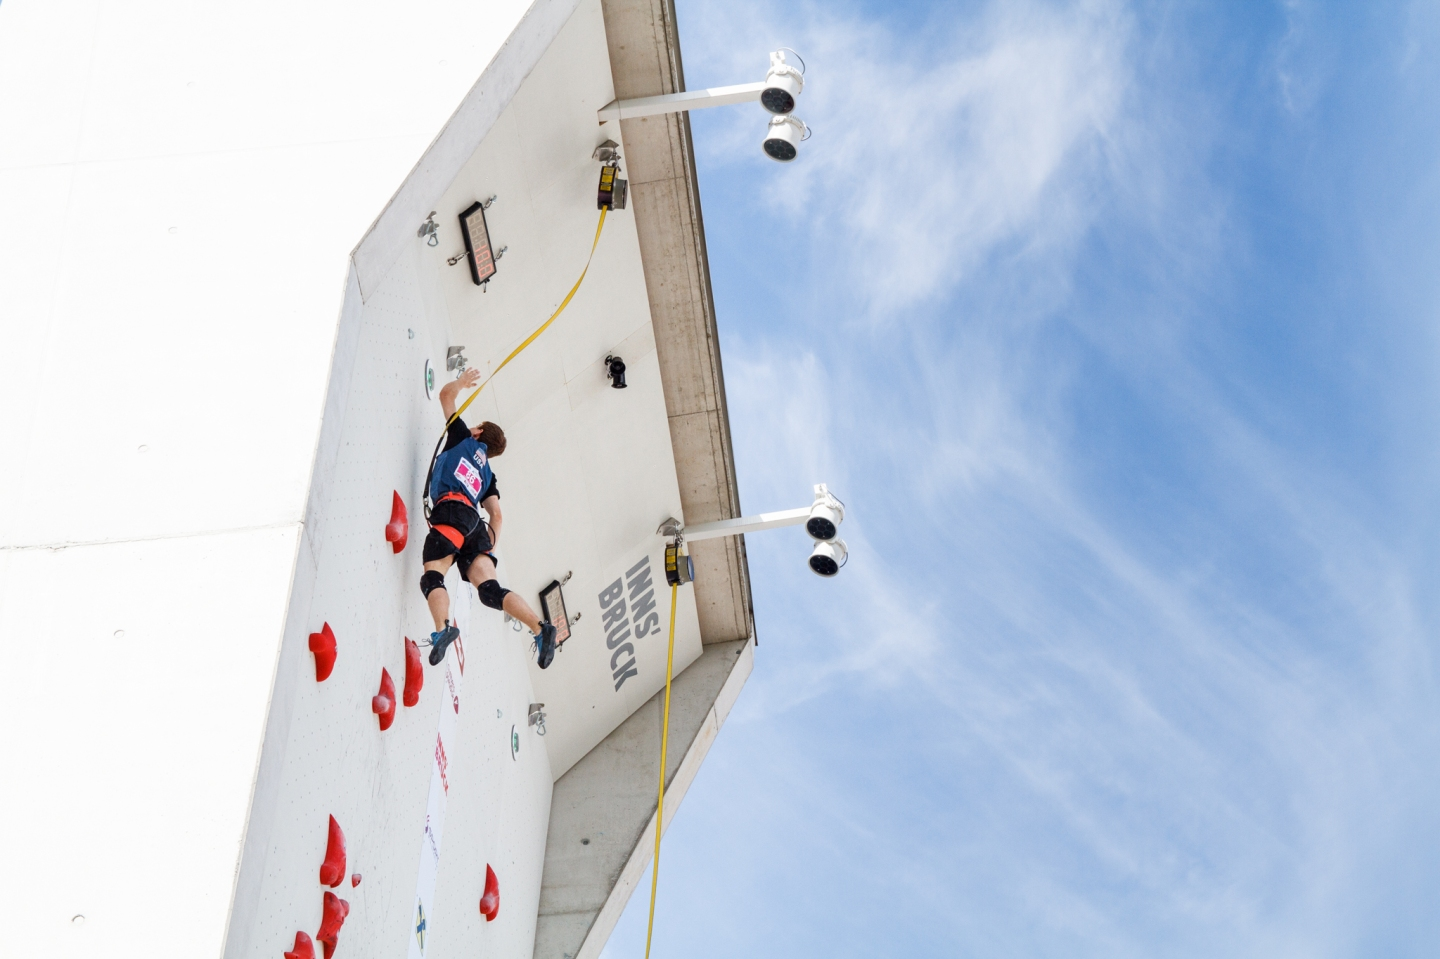 Speed climber at the 2017 IFSC Youth World Championships at Innsbruck, Austria | Photo credit: Jennie Jariel